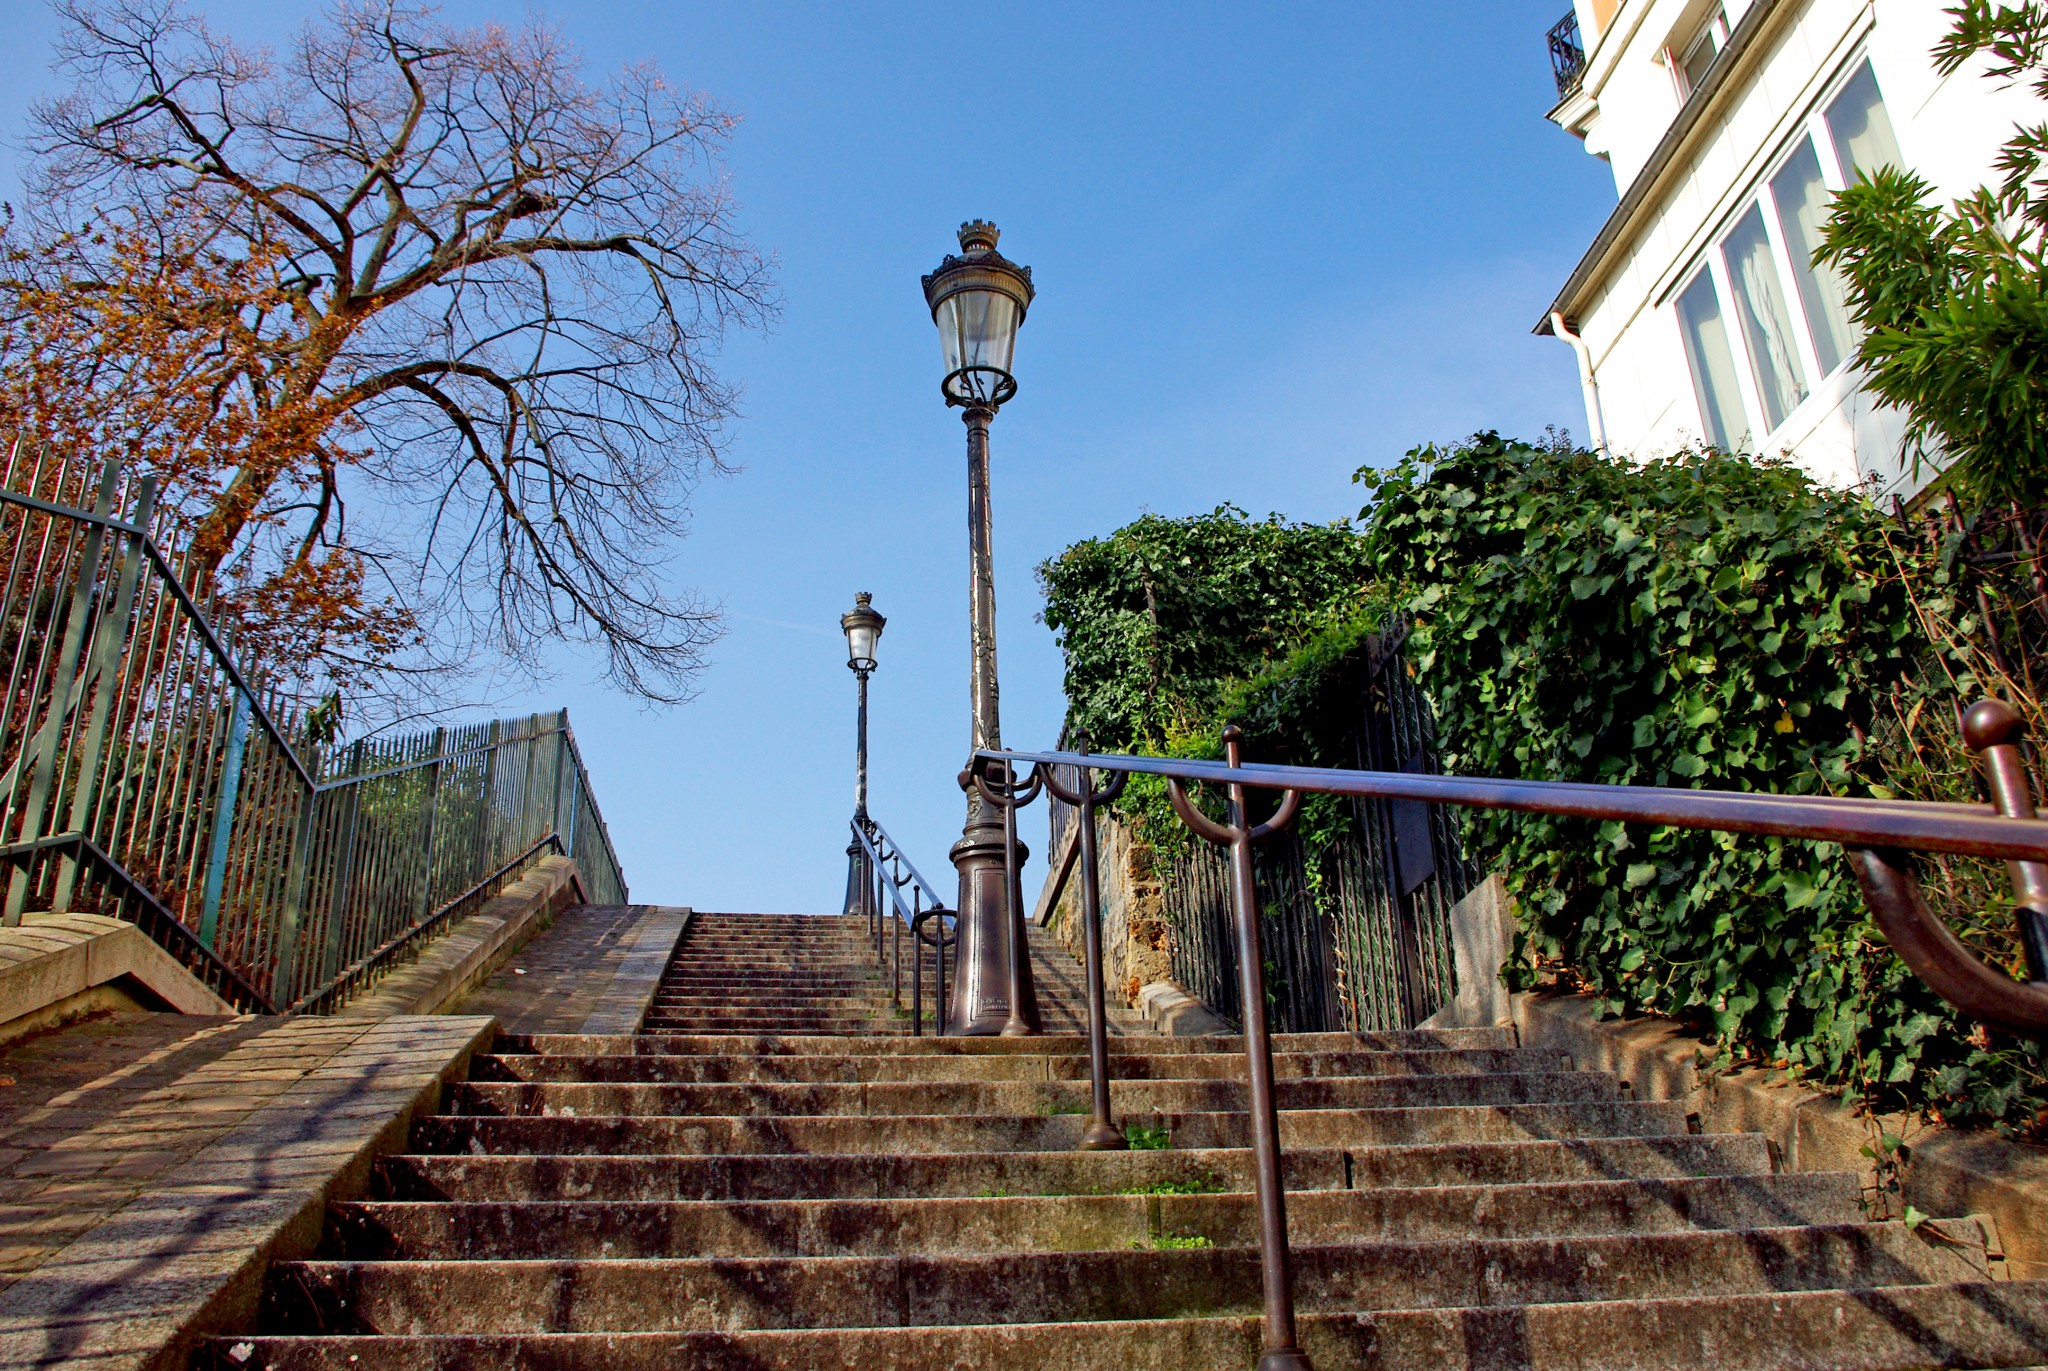 The stairs of rue Maurice Utrillo leading to the Sacré-Cœur, Montmartre © French Moments